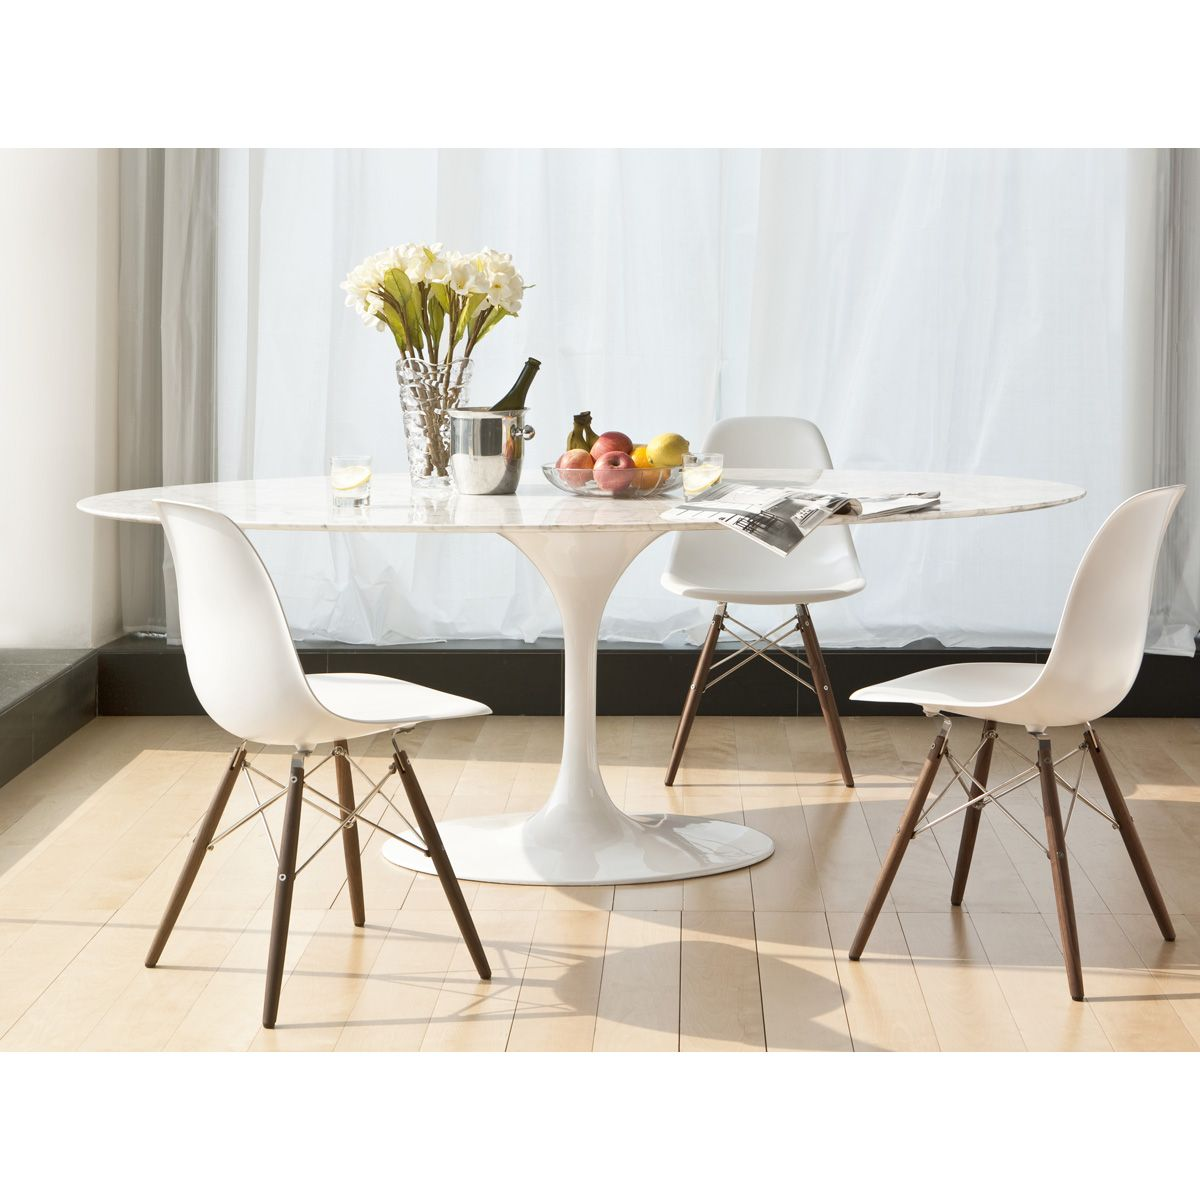 Saarinen Tulip Oval Marble Dining Table Dining Table Marble